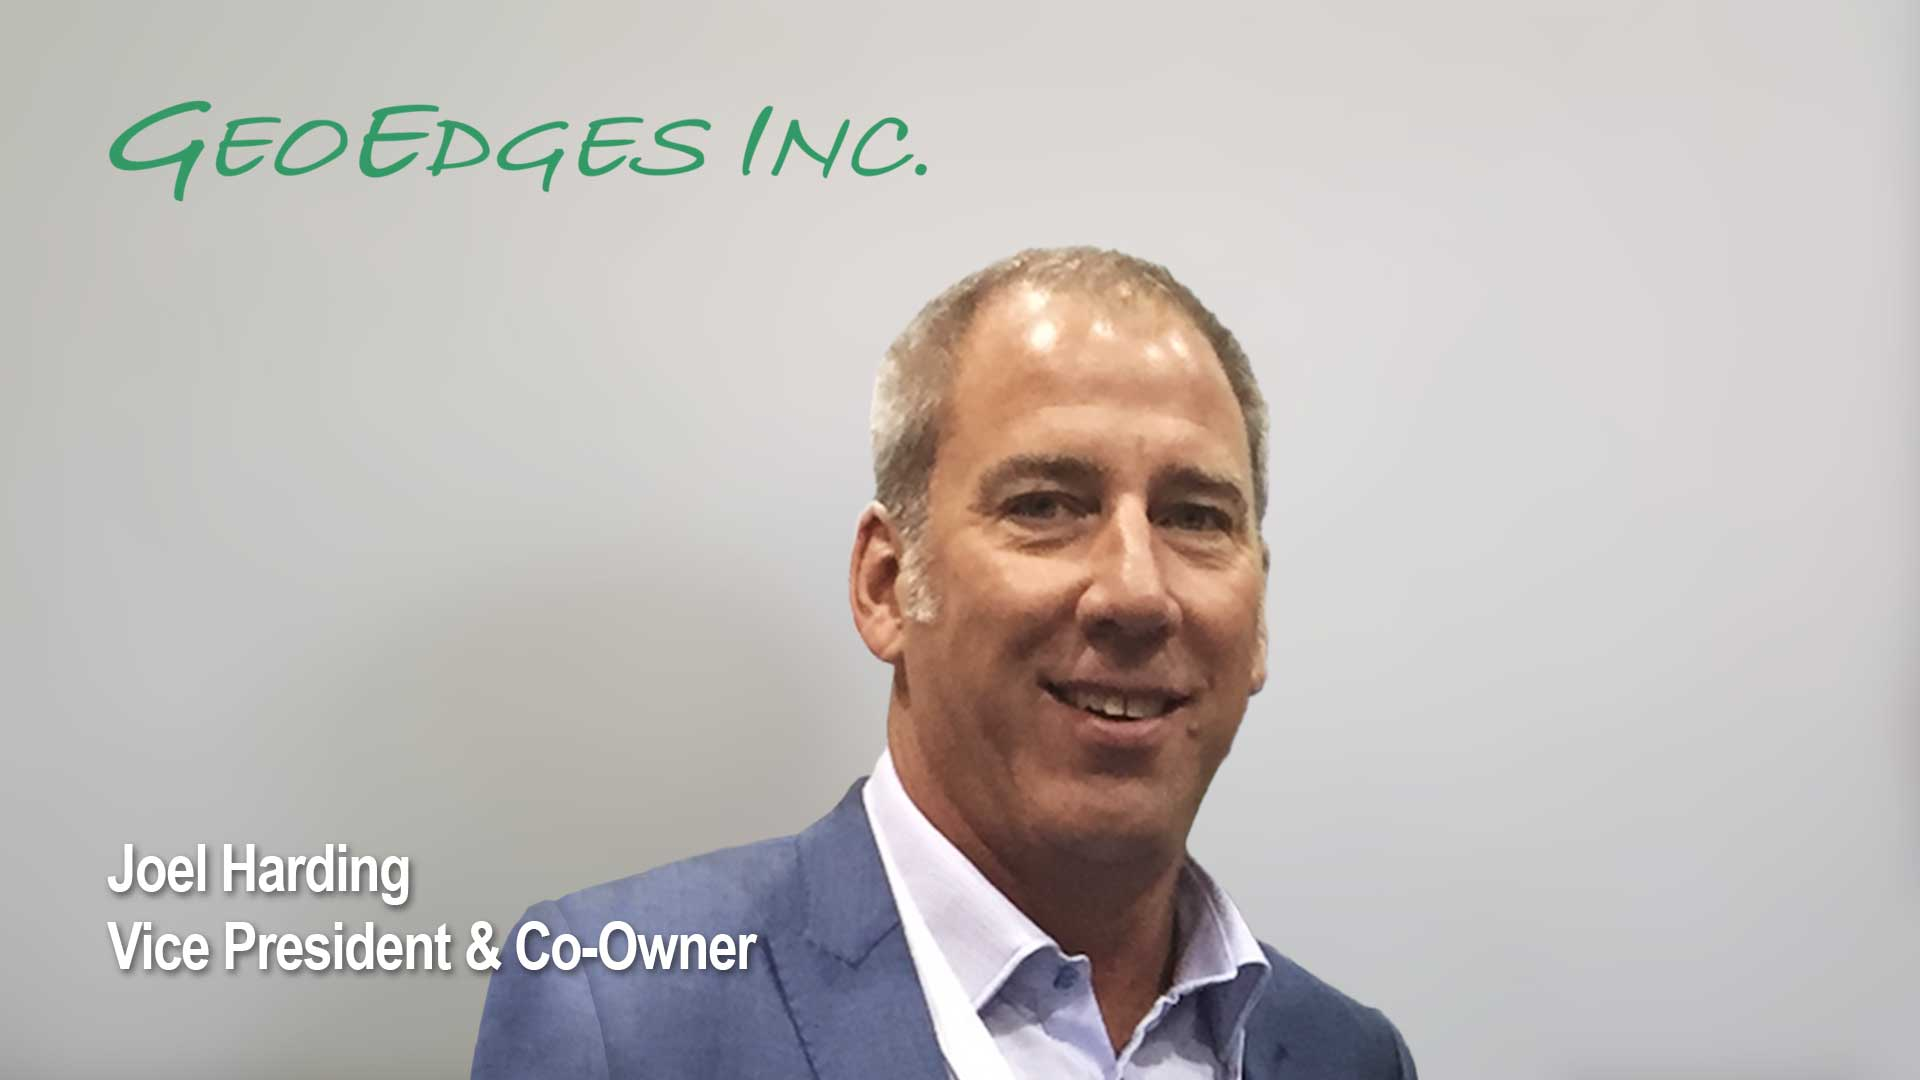 Photograph of Joel Harding, vice president and co-owner of GeoEdges Inc.